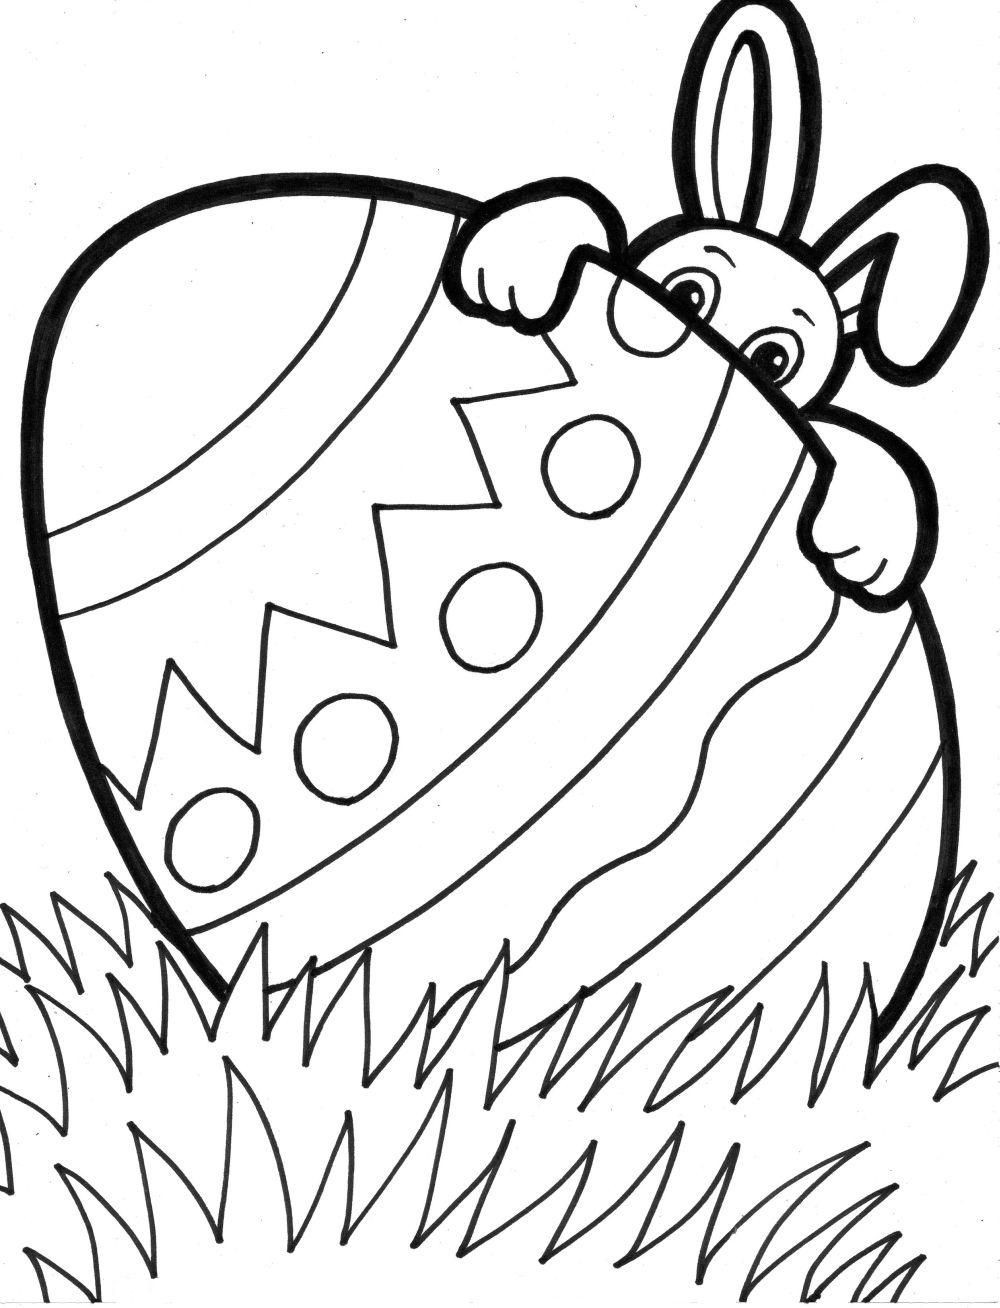 Best ideas about Coloring Pages For Kids For Easter . Save or Pin Family Travel Blog and Top Lifestyle Blogger in California Now.